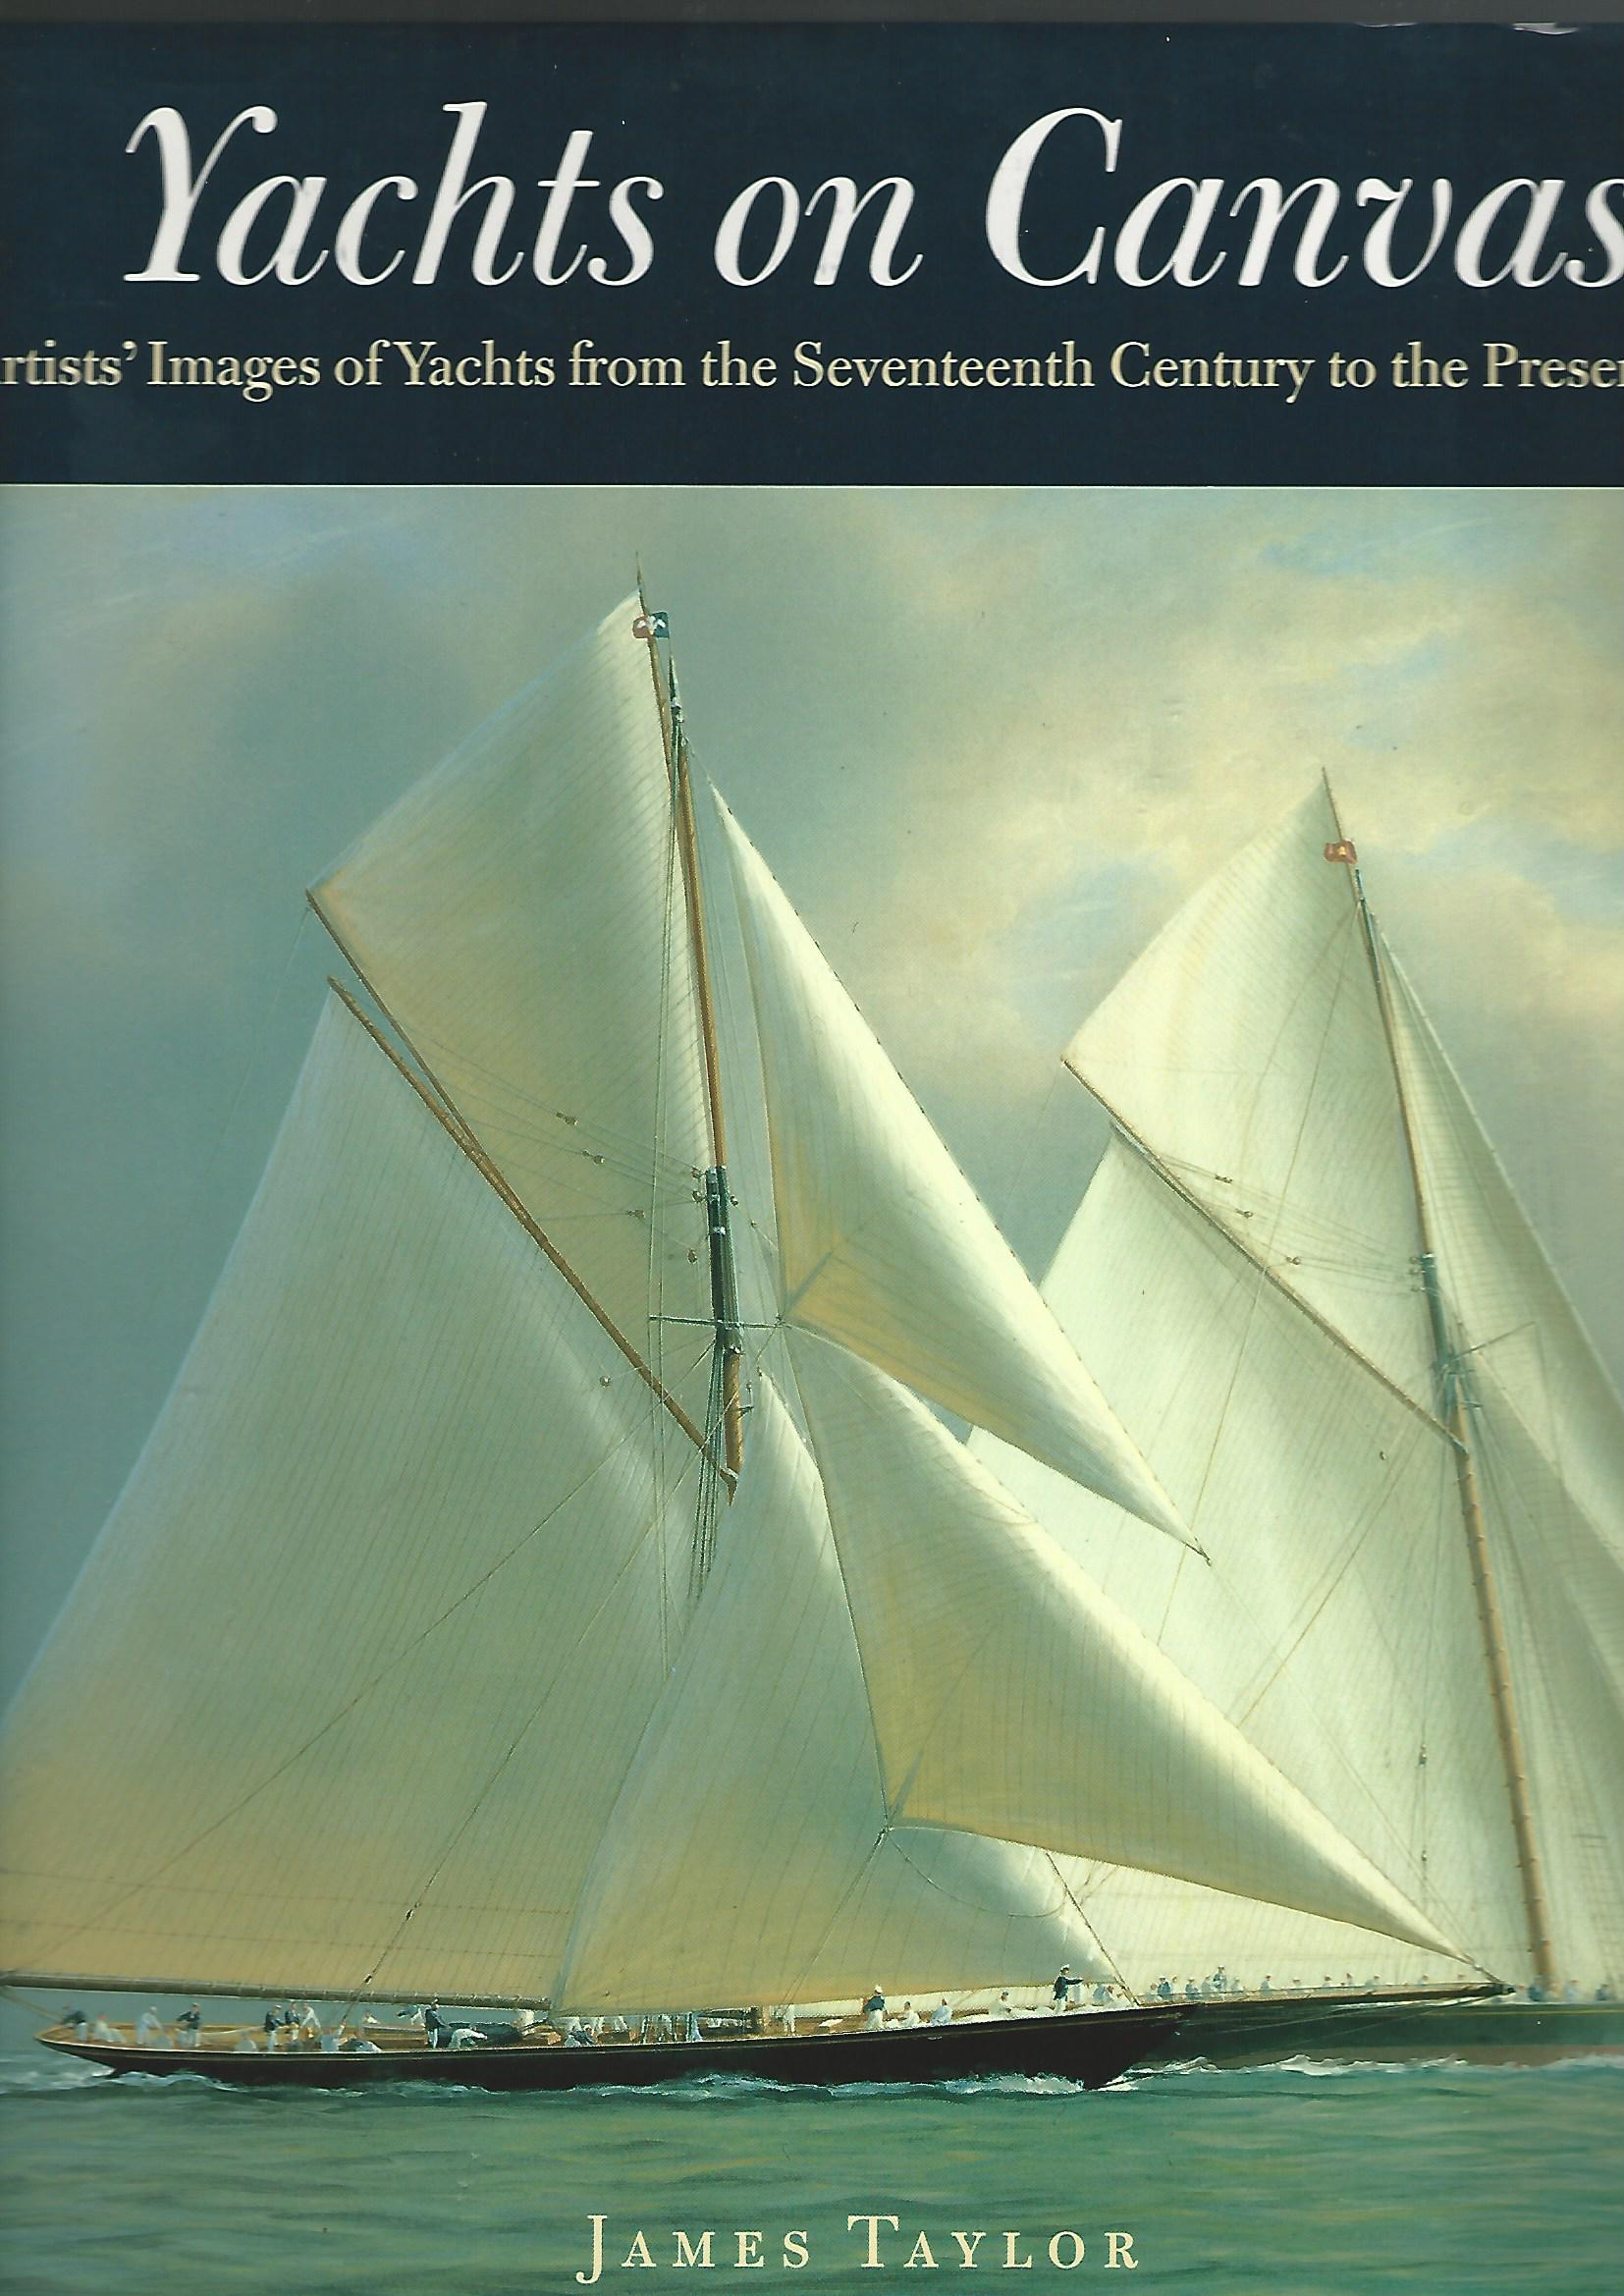 Image for Yachts on Canvas: Artists' Images of Yachts from the Seventeenth Century to the Present: A Pictorial History of Yachting